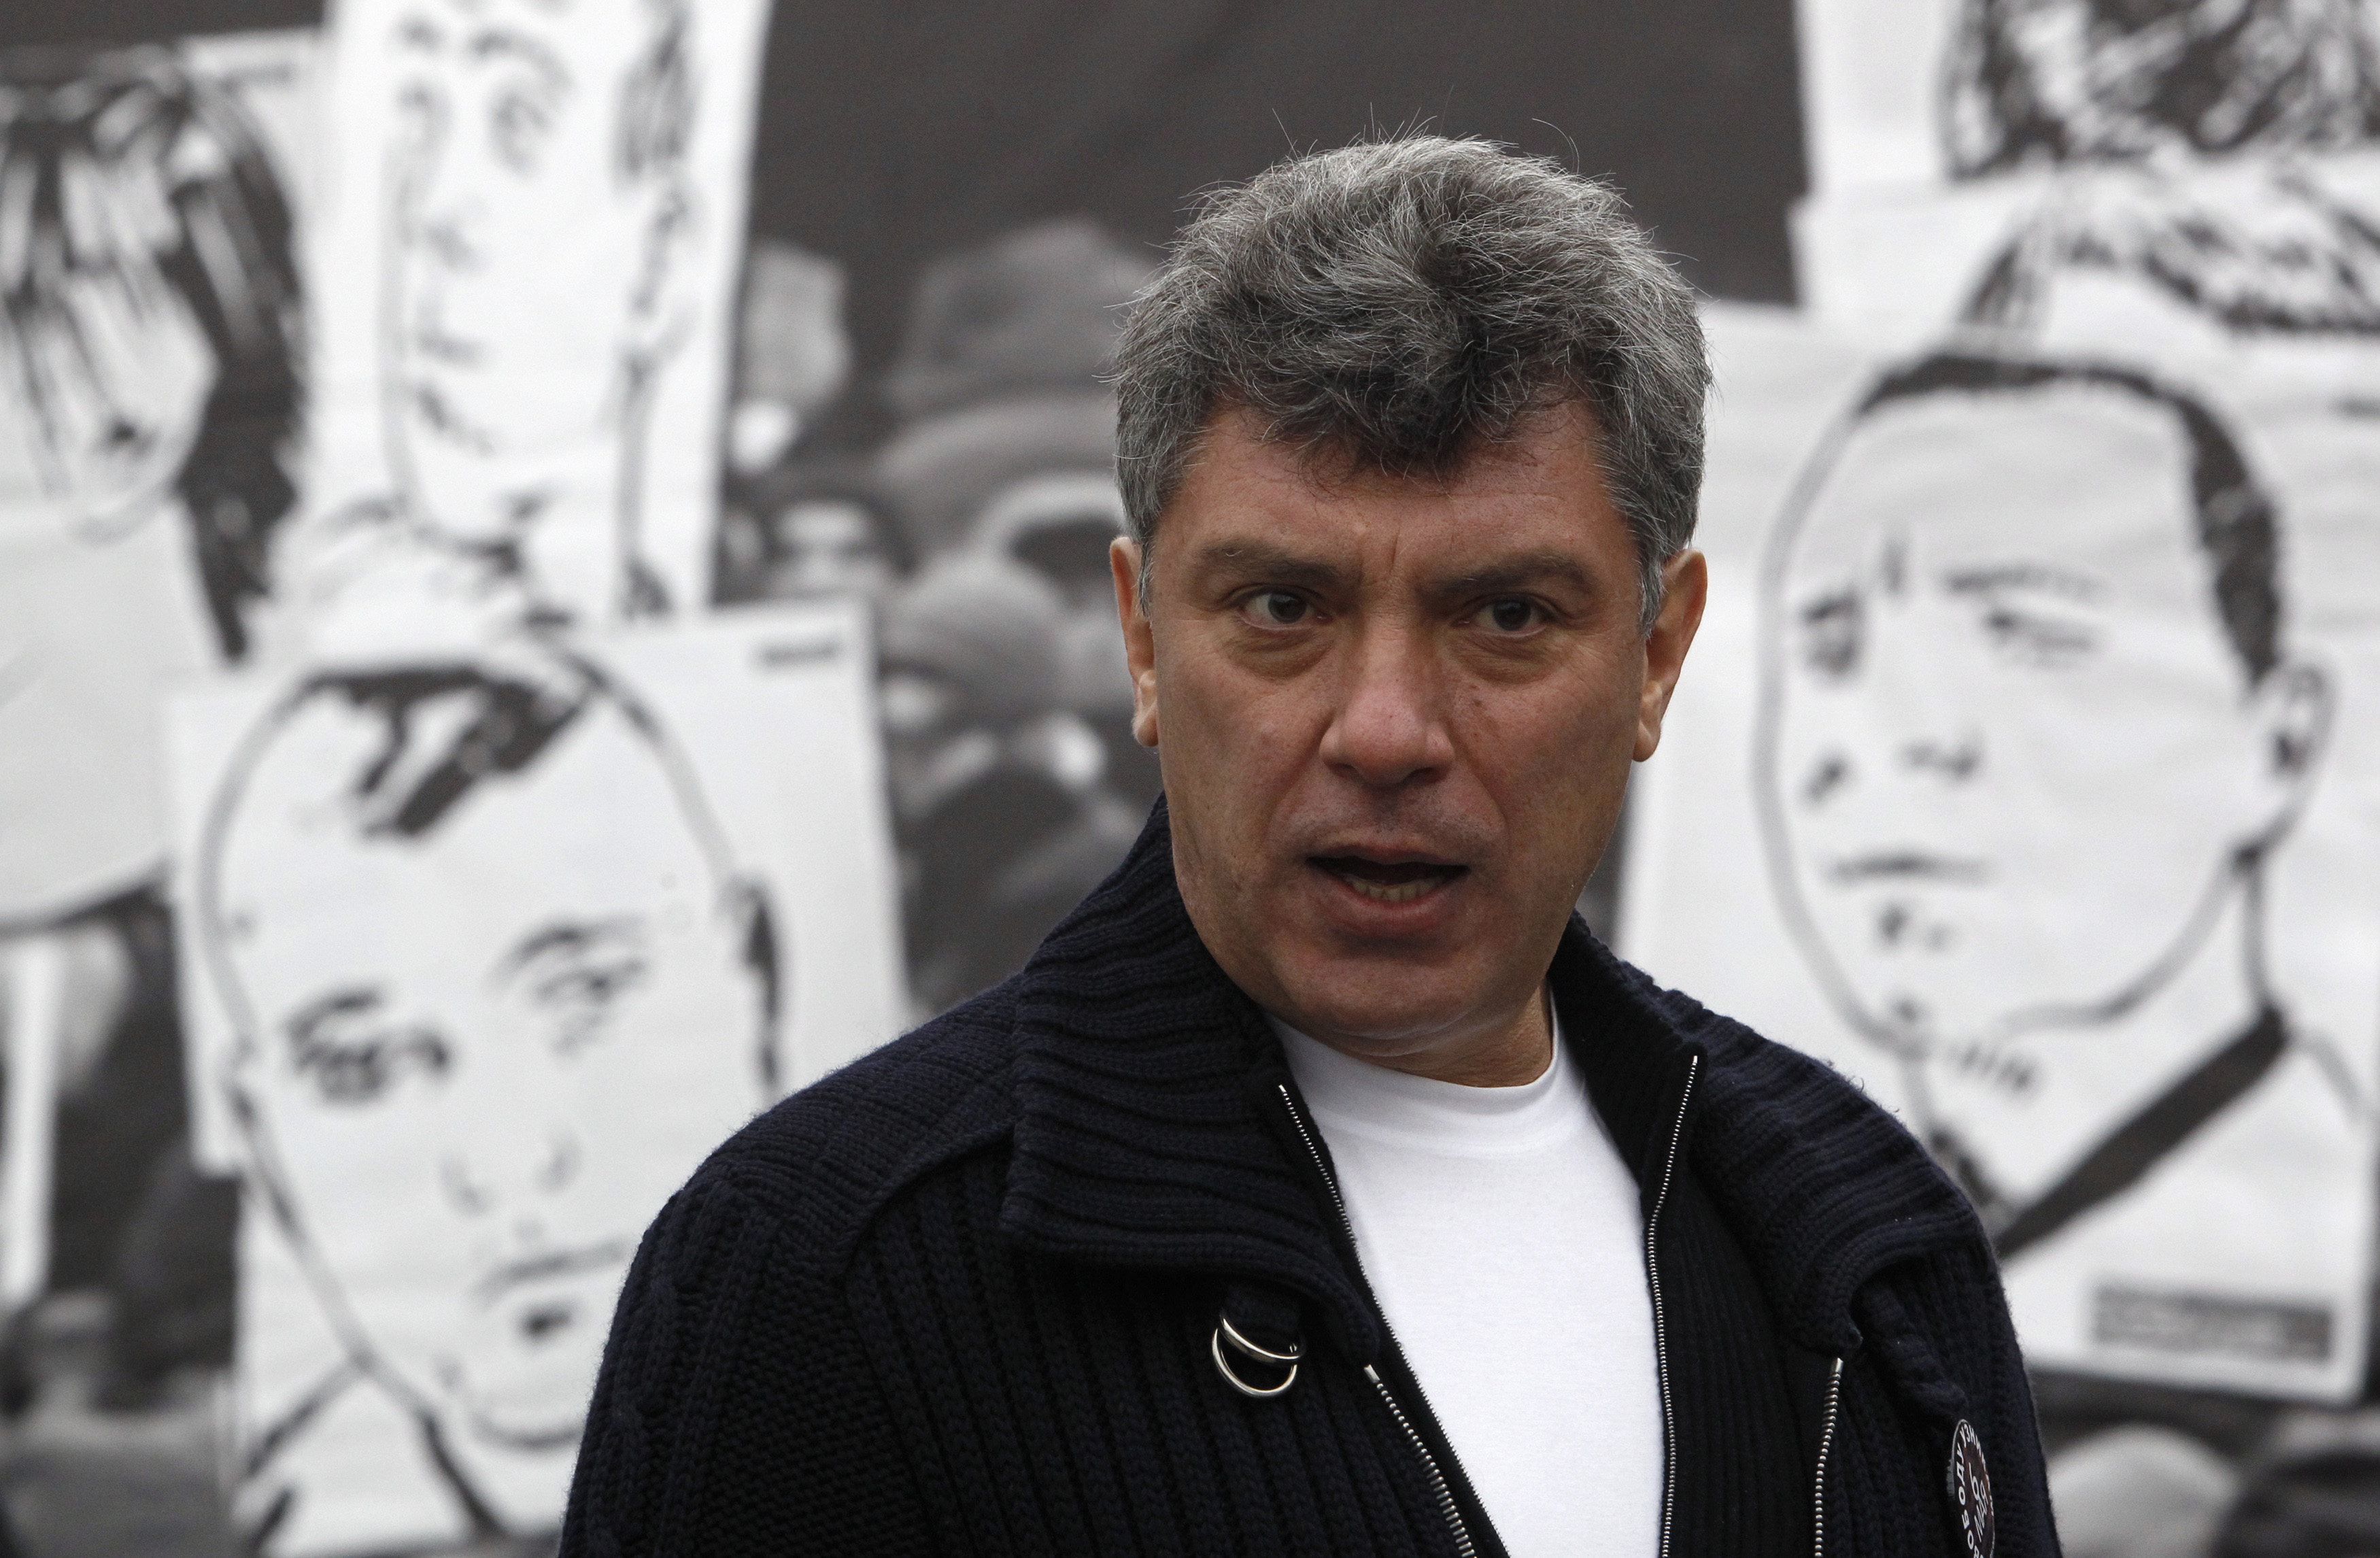 Image for The Deaths of Nemtsov and a Russia that Never Emerged